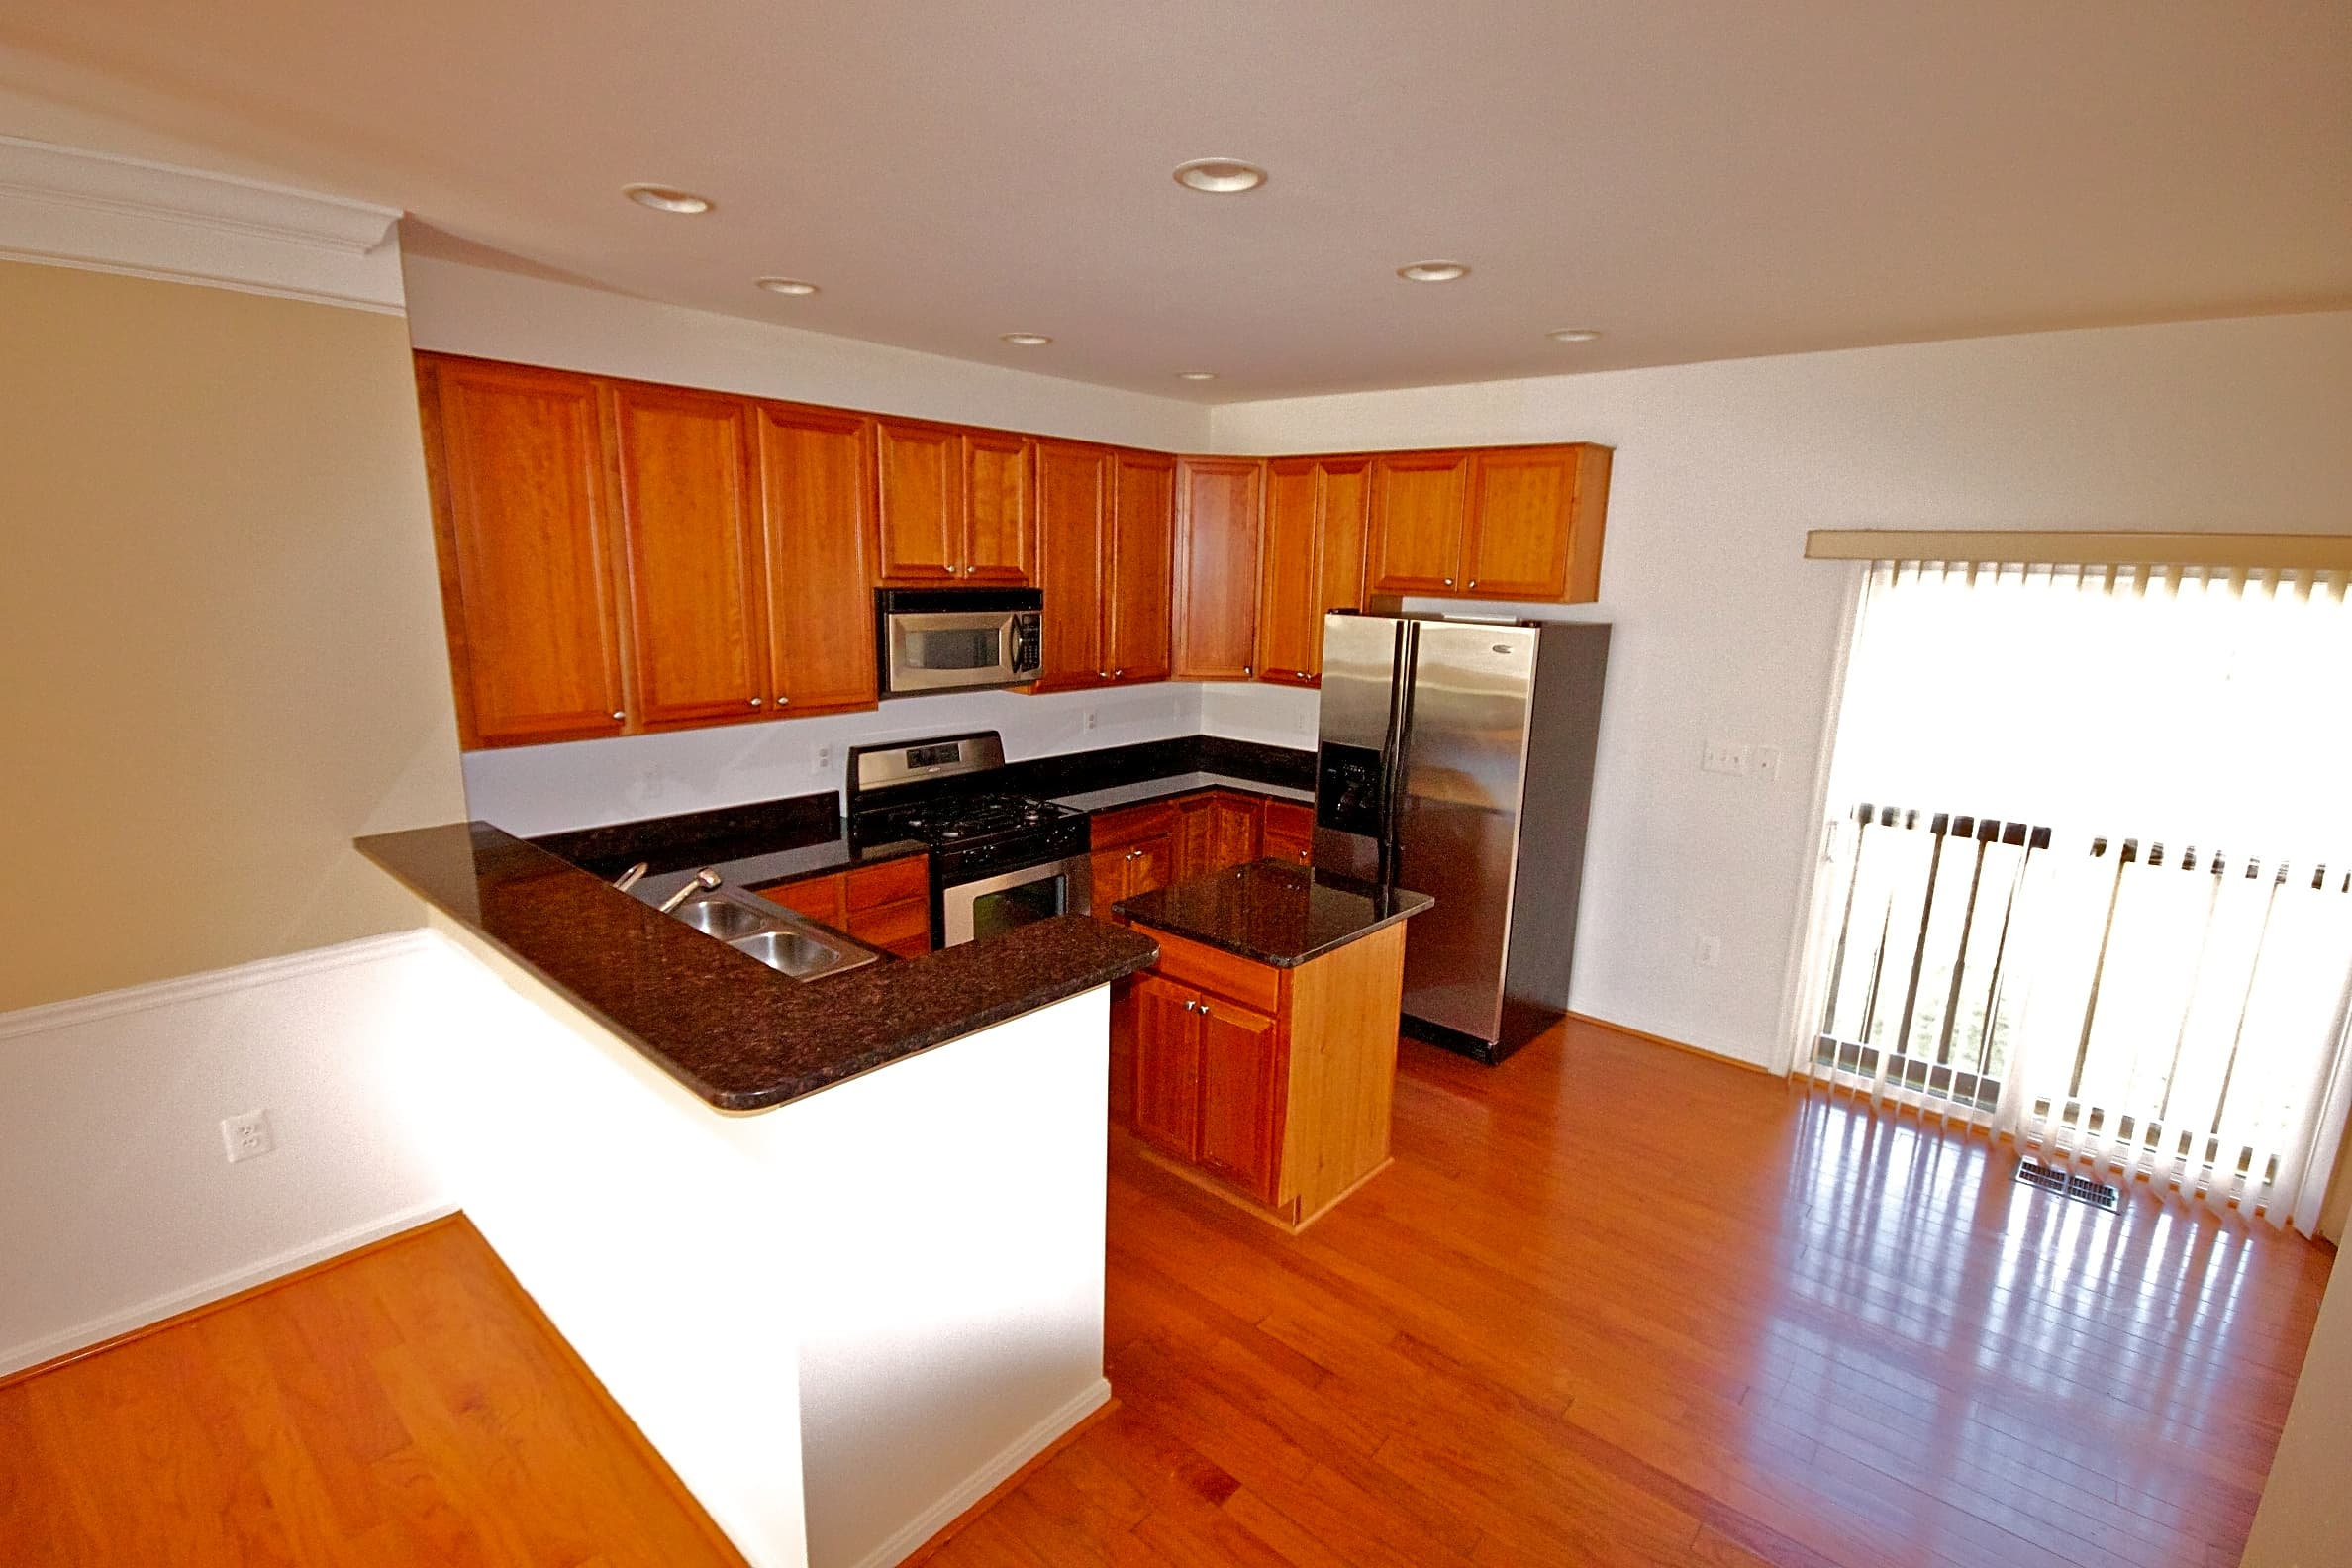 Condo for Rent in Ashburn